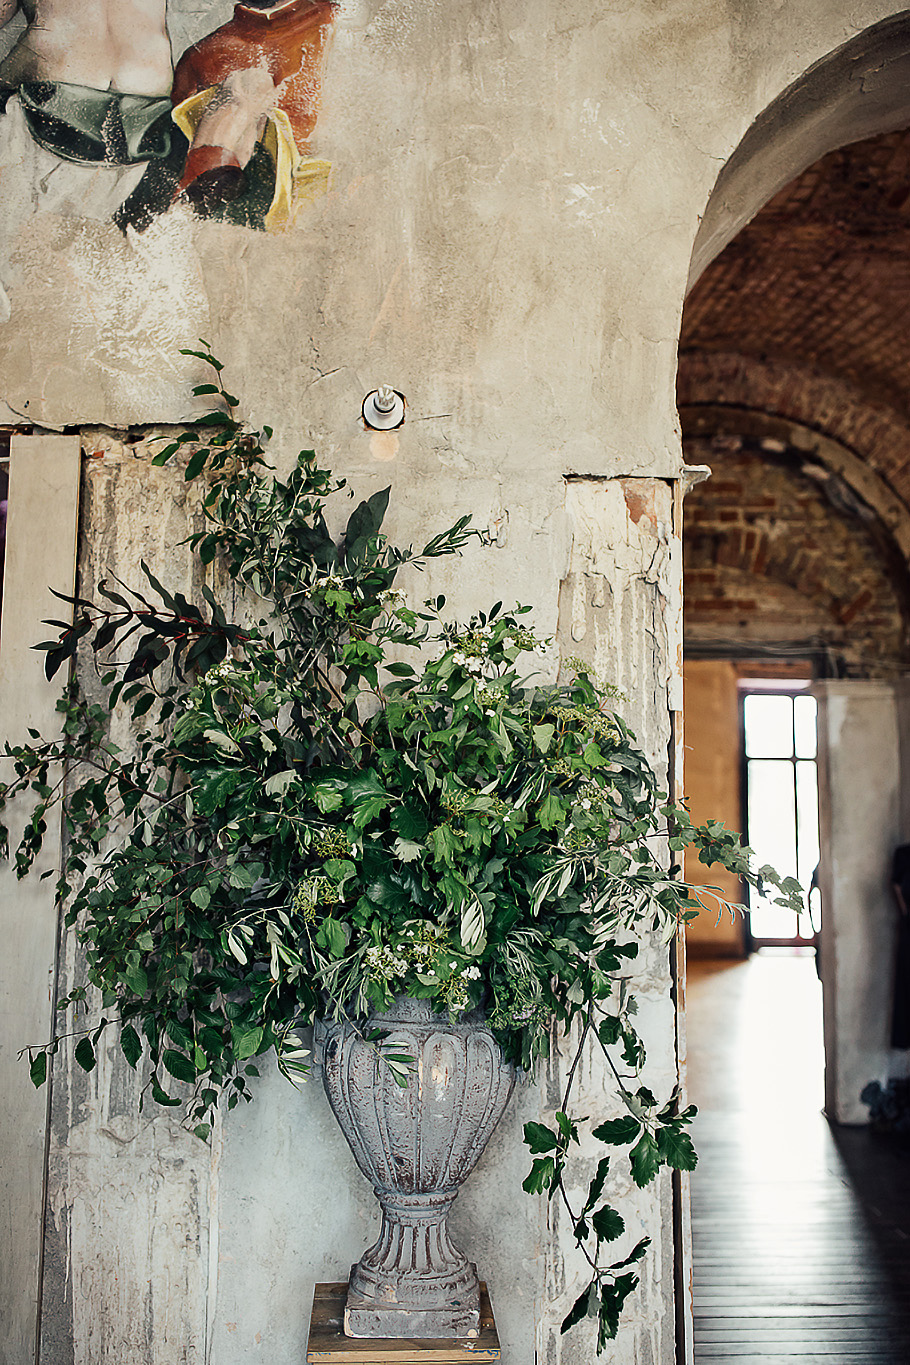 Foliage only urns flanking the entrance to the decaying romantic reception building